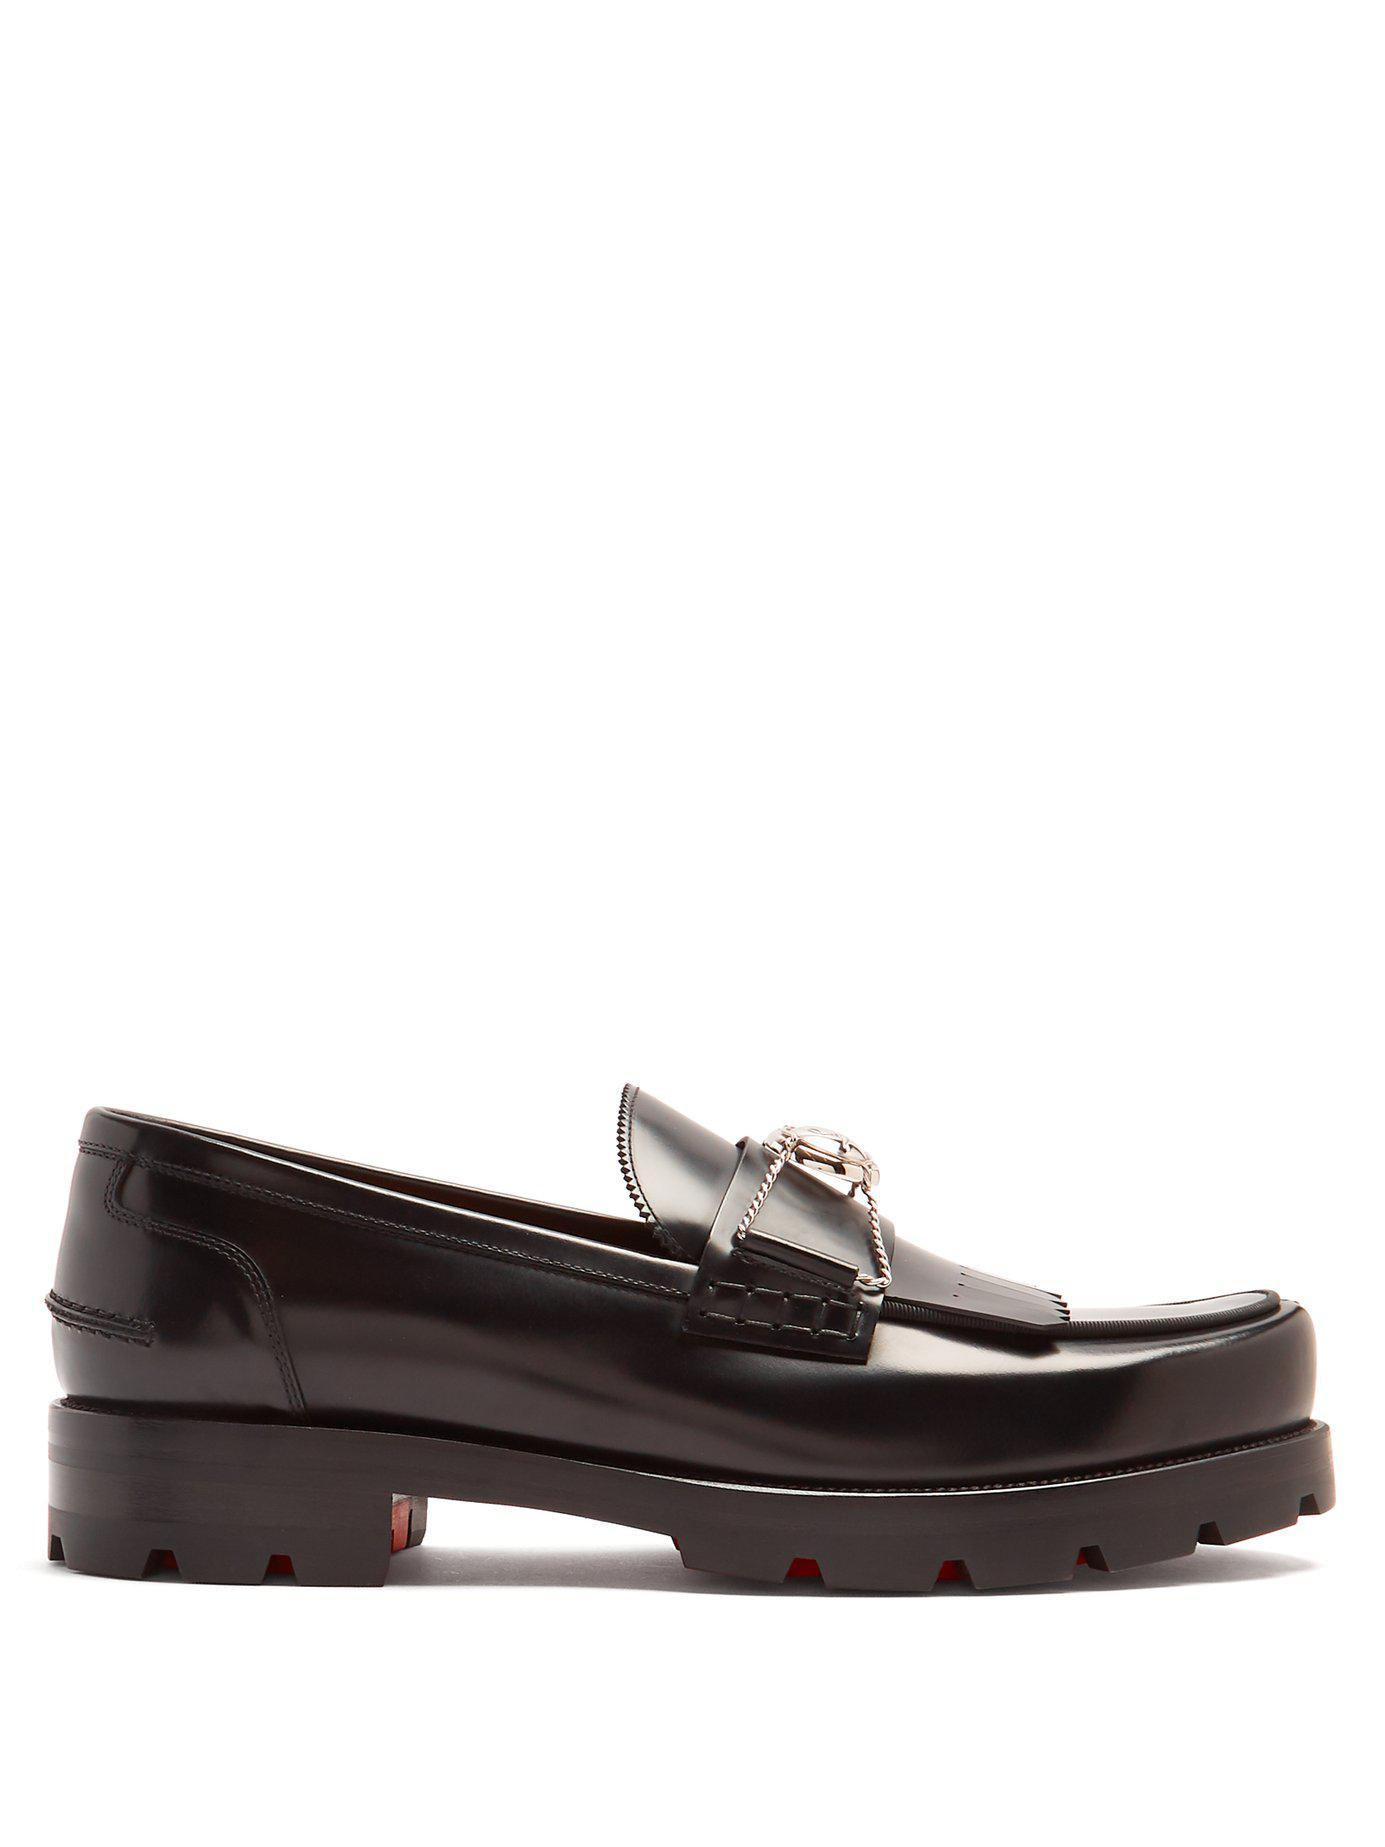 sports shoes a9dfc 0f1b4 christian-louboutin-black-bubbly-Leather-Loafer.jpeg